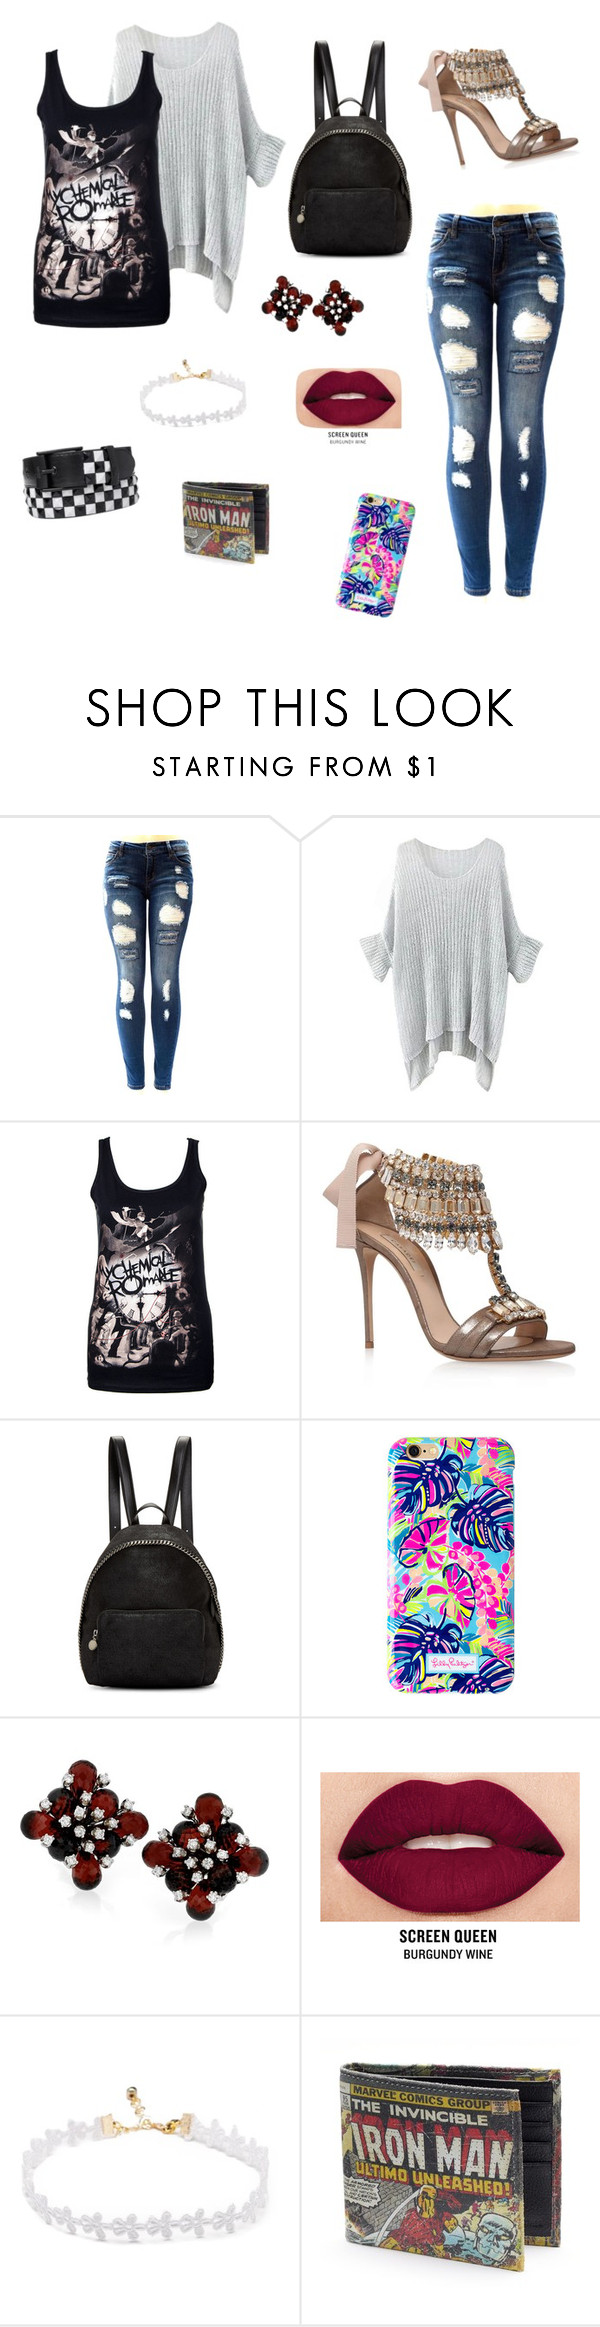 """""""Mad Hatter by Melanie Martinez"""" by flowerypatrick ❤ liked on Polyvore featuring Casadei, STELLA McCARTNEY, Lilly Pulitzer and Smashbox"""